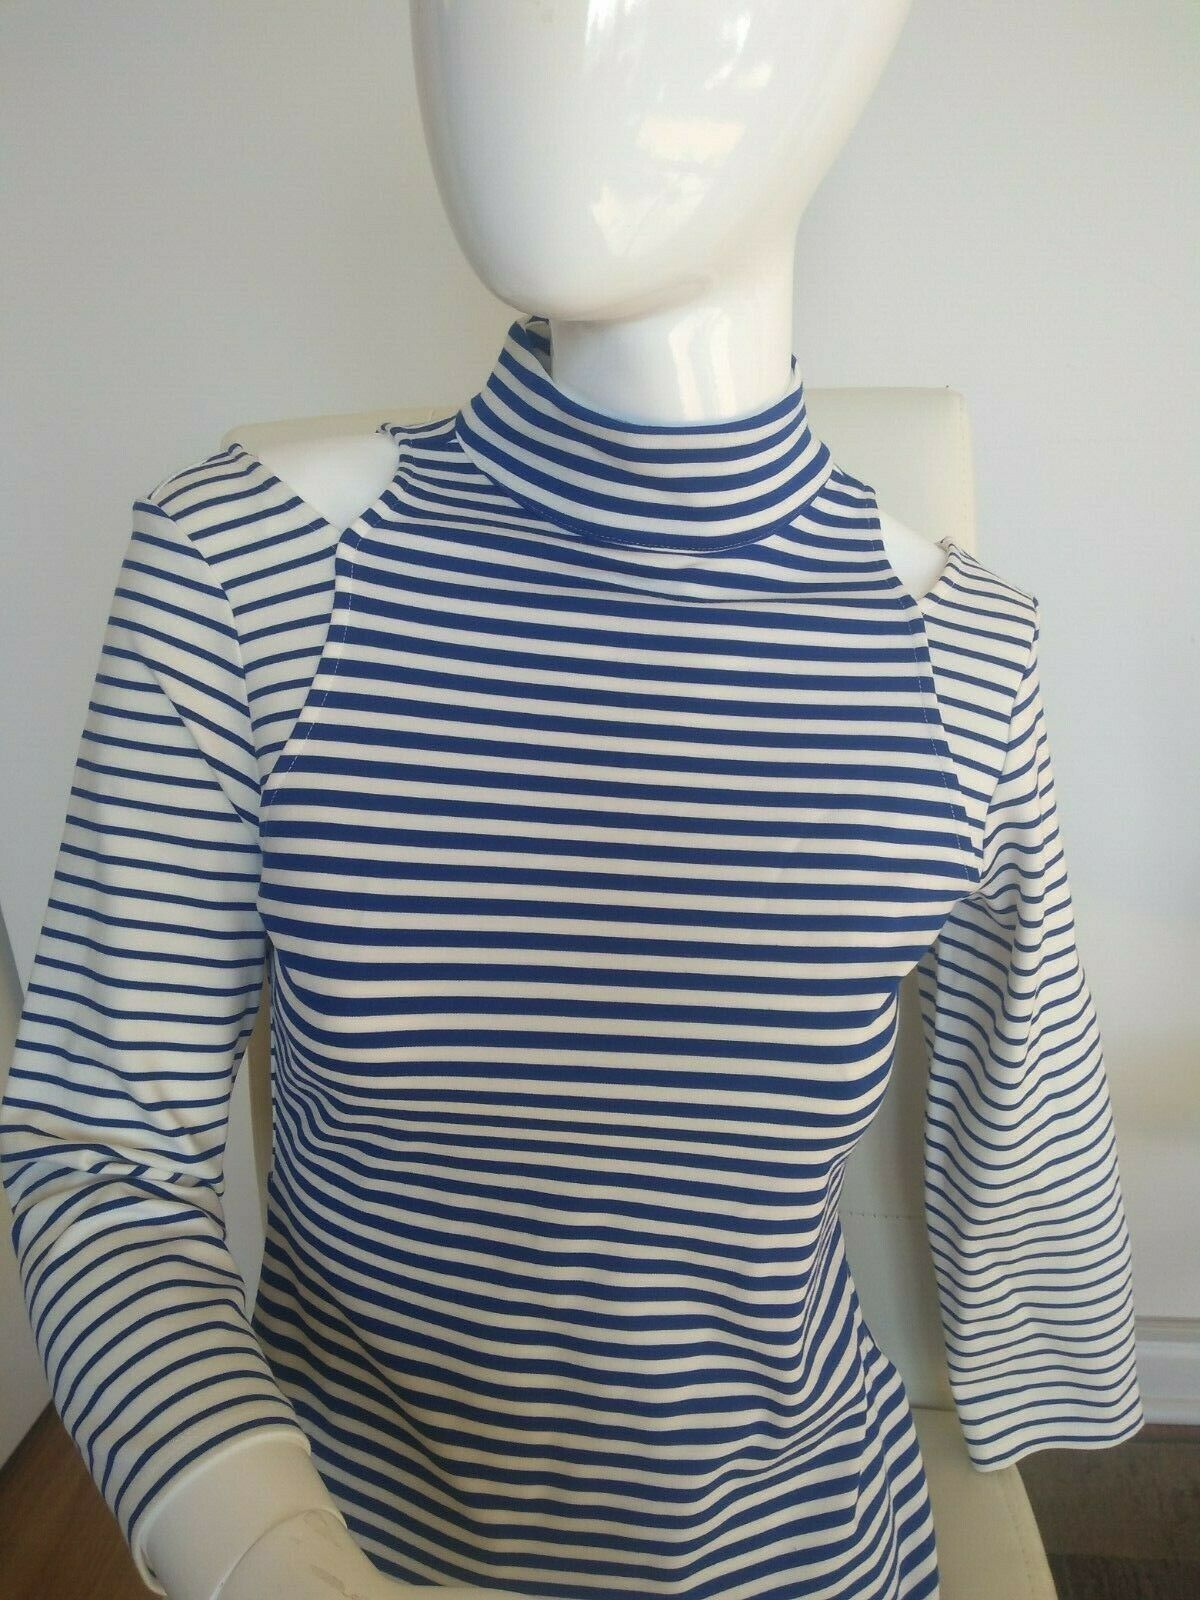 New, Karen Millen, blouse, top, Blau Weiß stripes, SZ US 6 ()